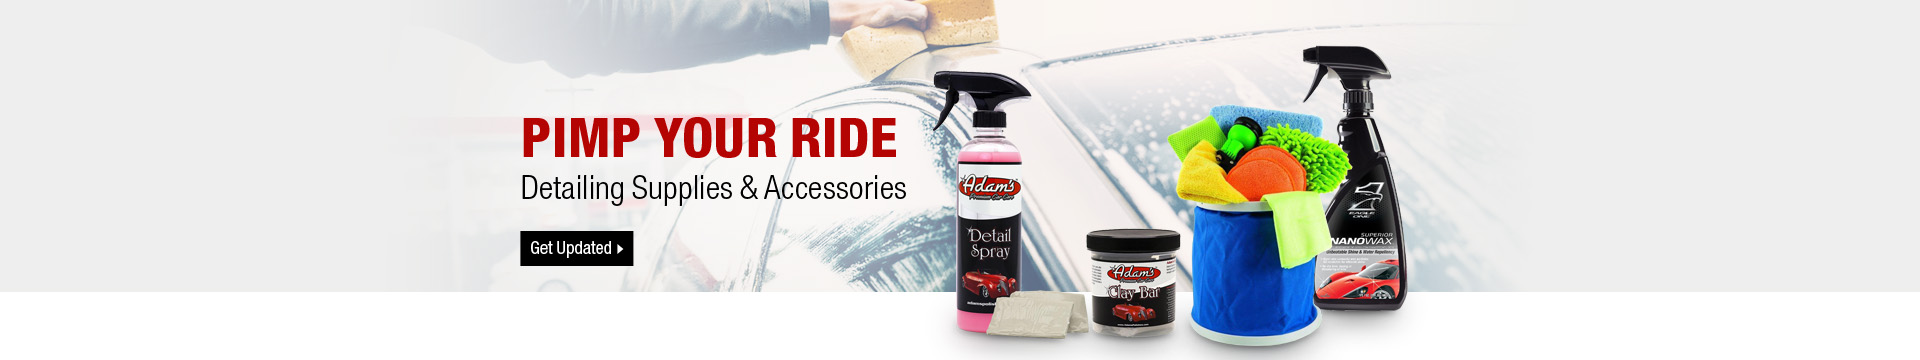 Detailing Supplies & Accessories